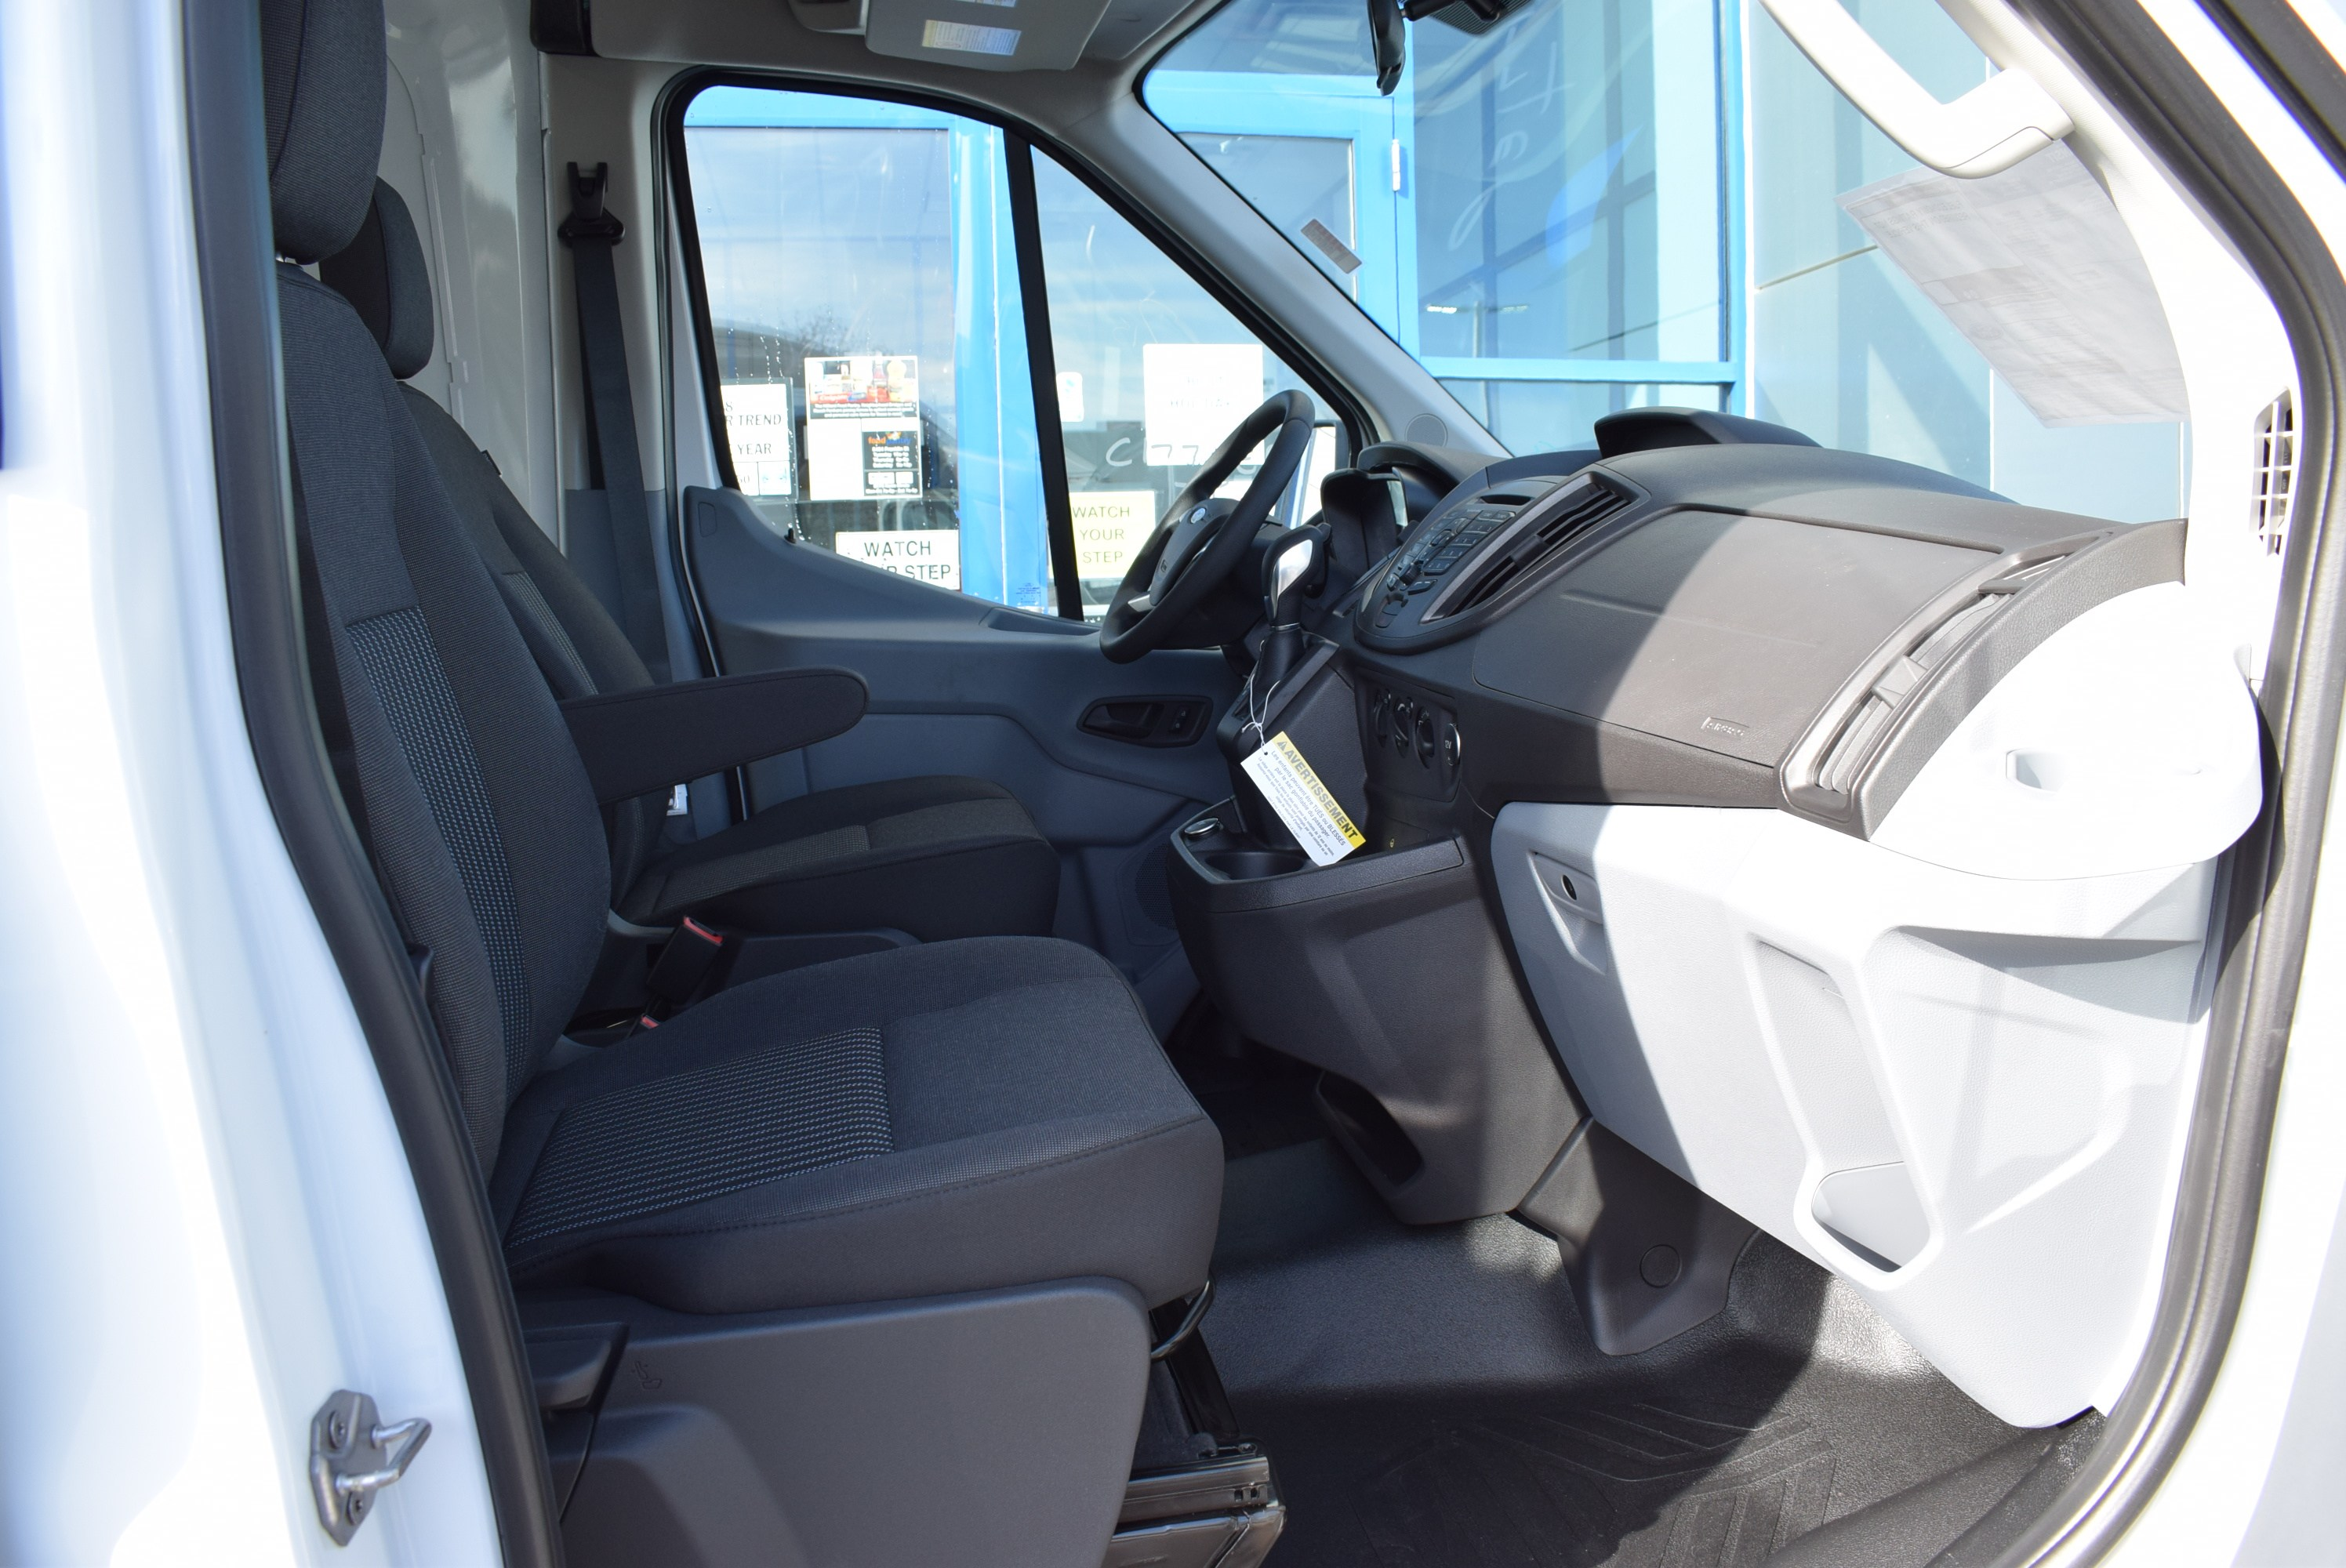 2019 Transit 350 Med Roof 4x2,  Empty Cargo Van #T19045 - photo 14